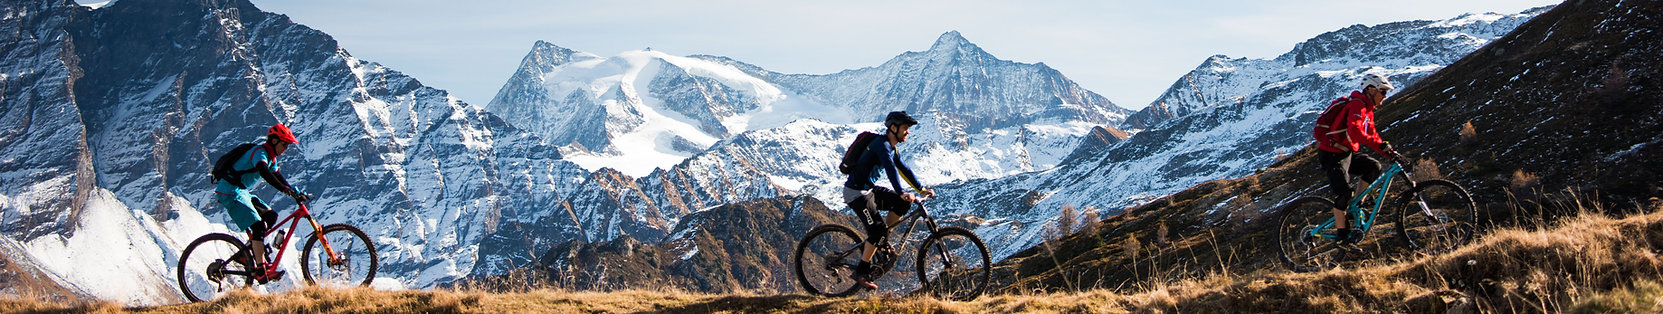 Alps, switzerland, bike, biking, guiding, enduro, valais, ride, pure